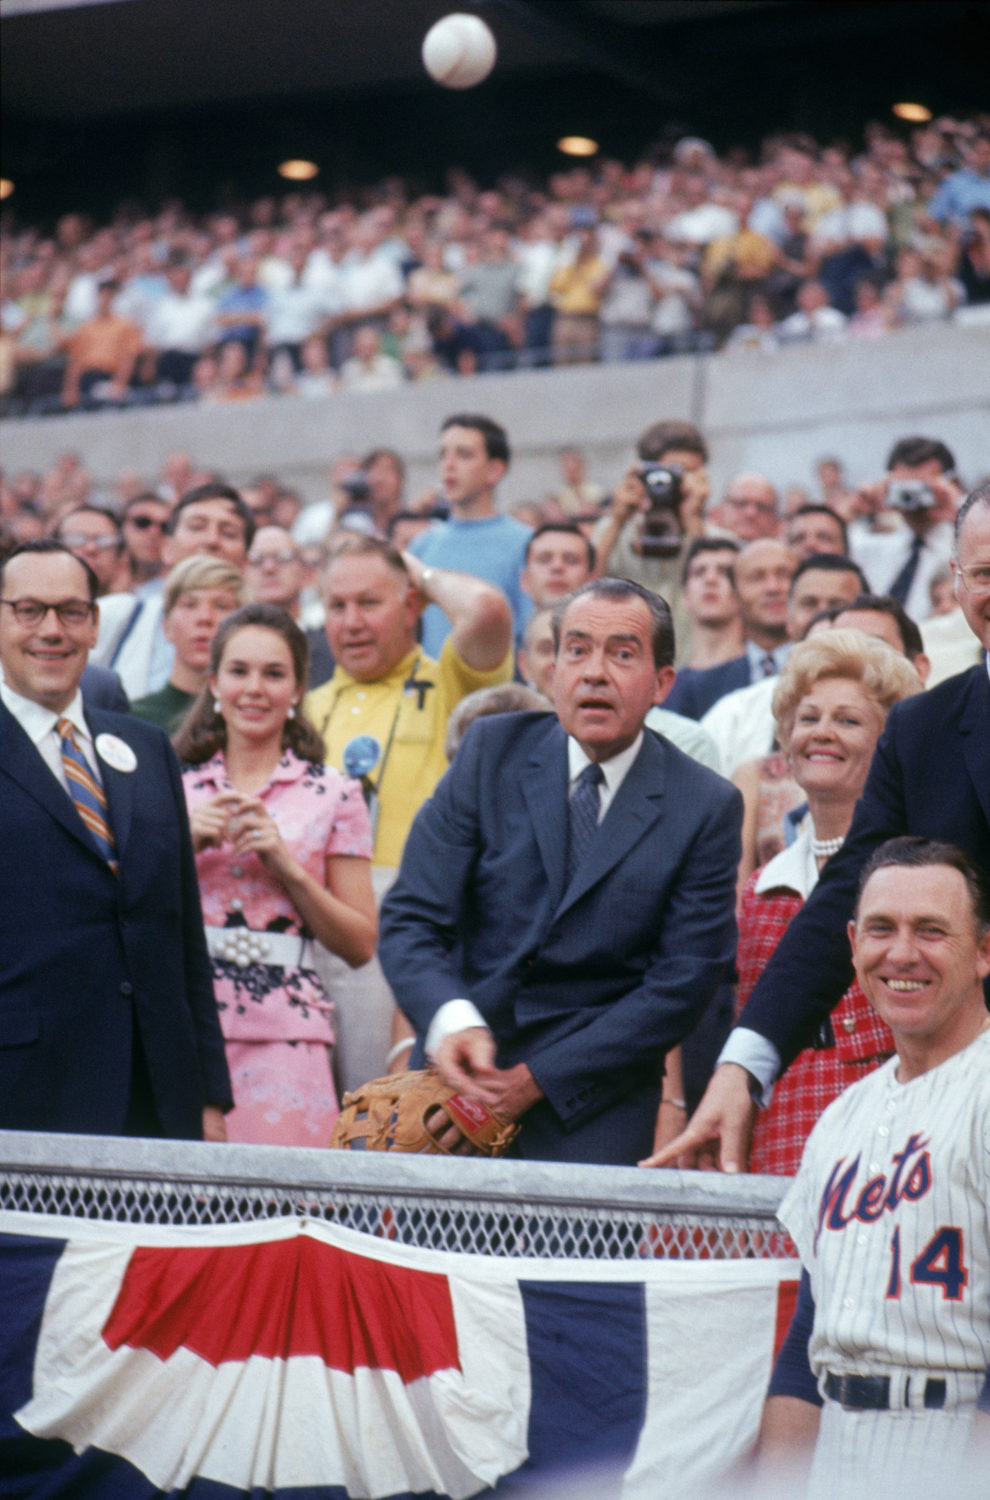 Nixon Throws First Pitch for 1970 All-Star Game